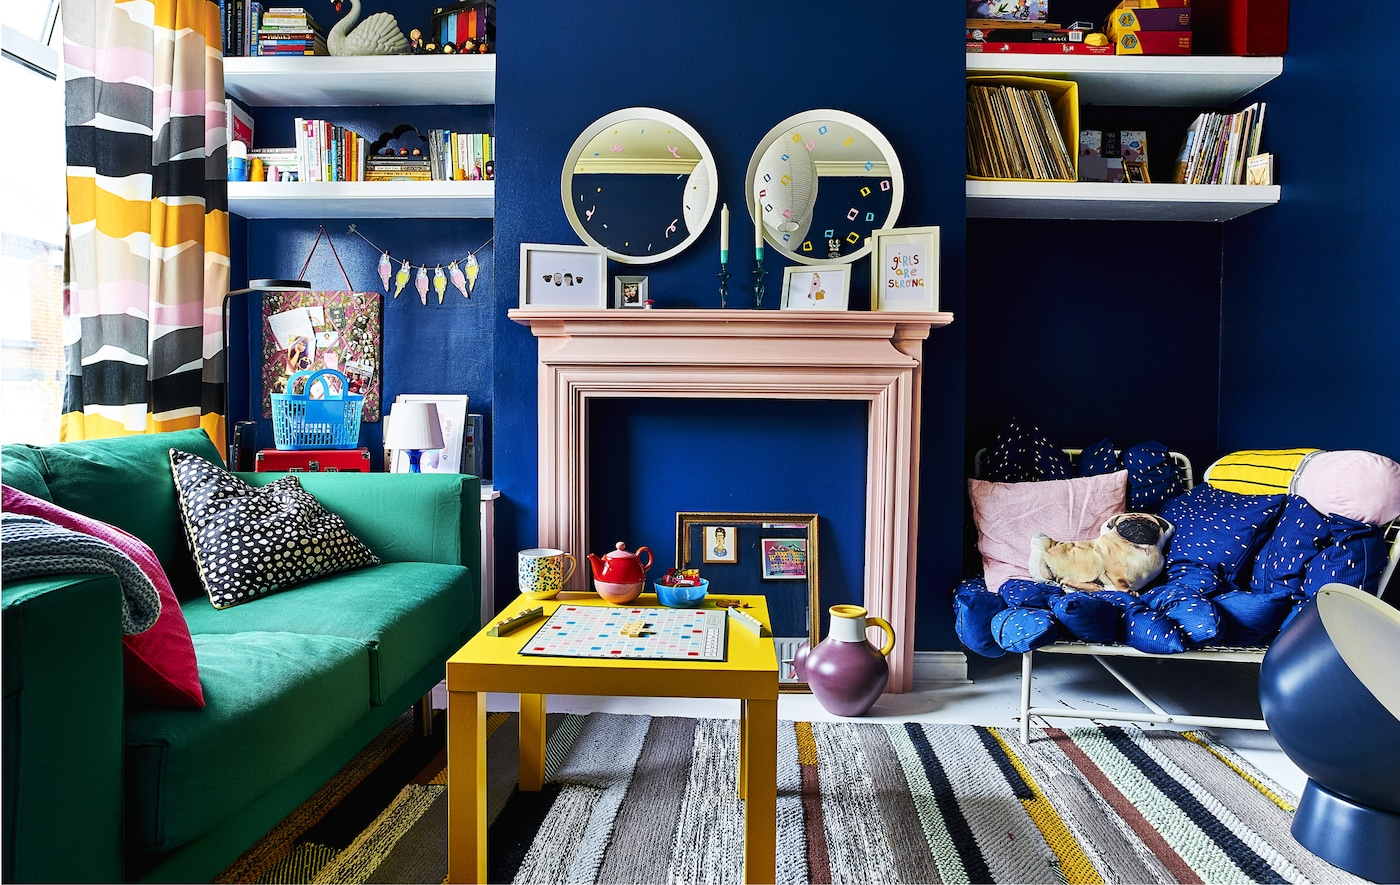 A colourful living room with blue walls and green sofa.